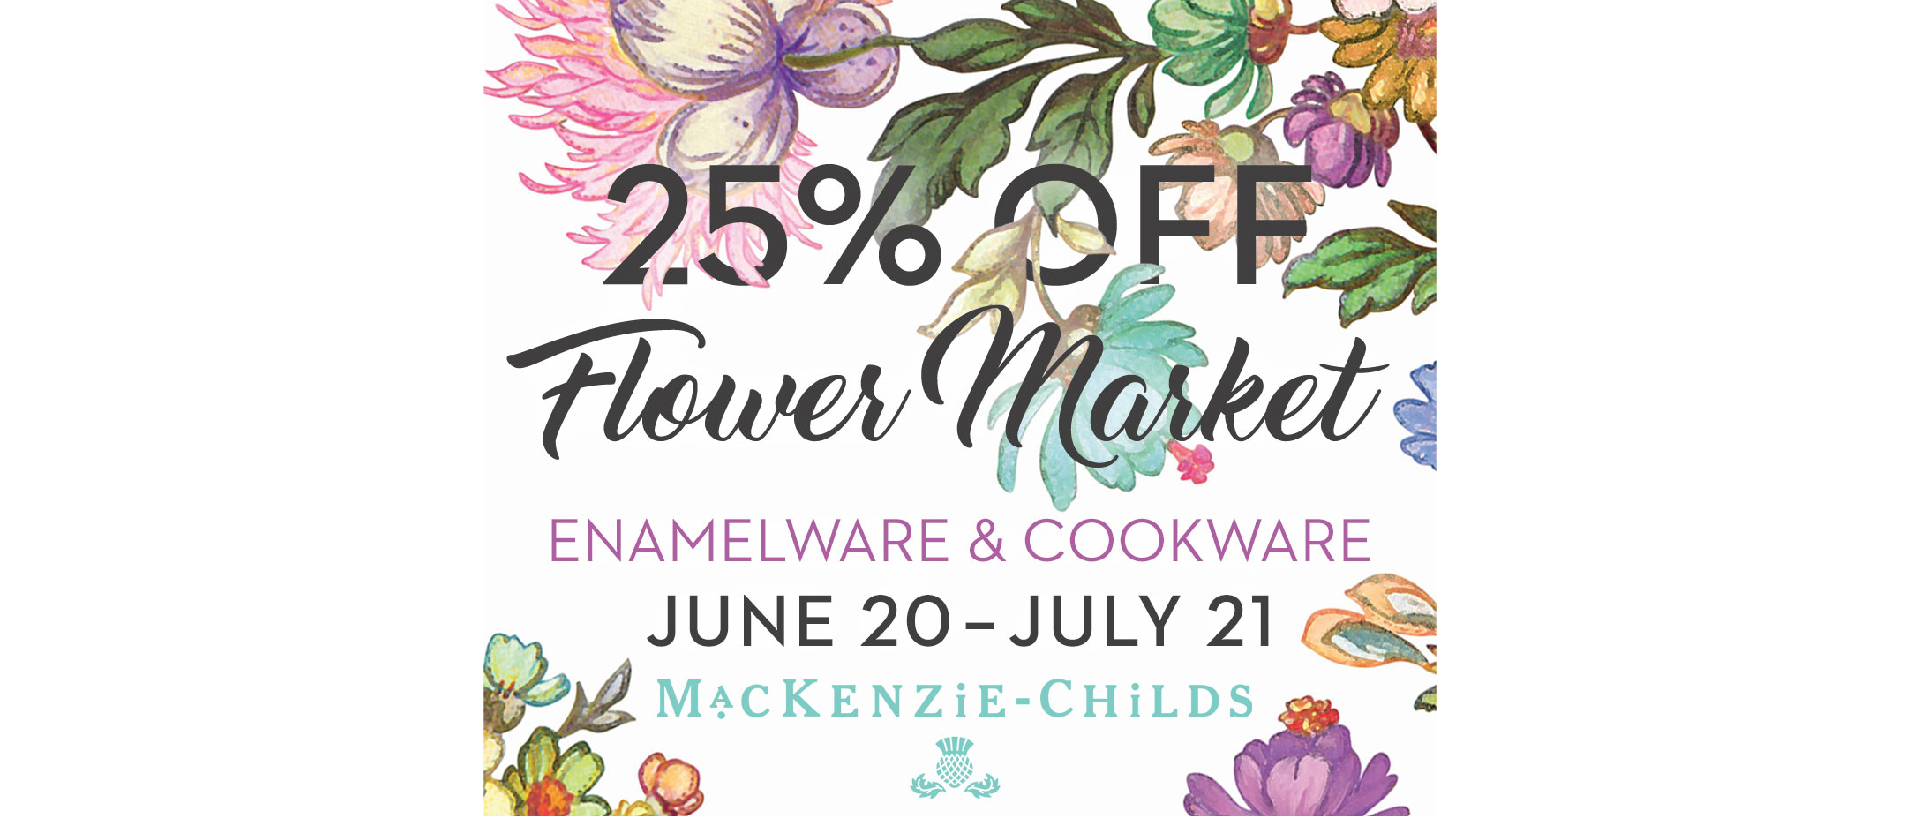 Flower Market Sale